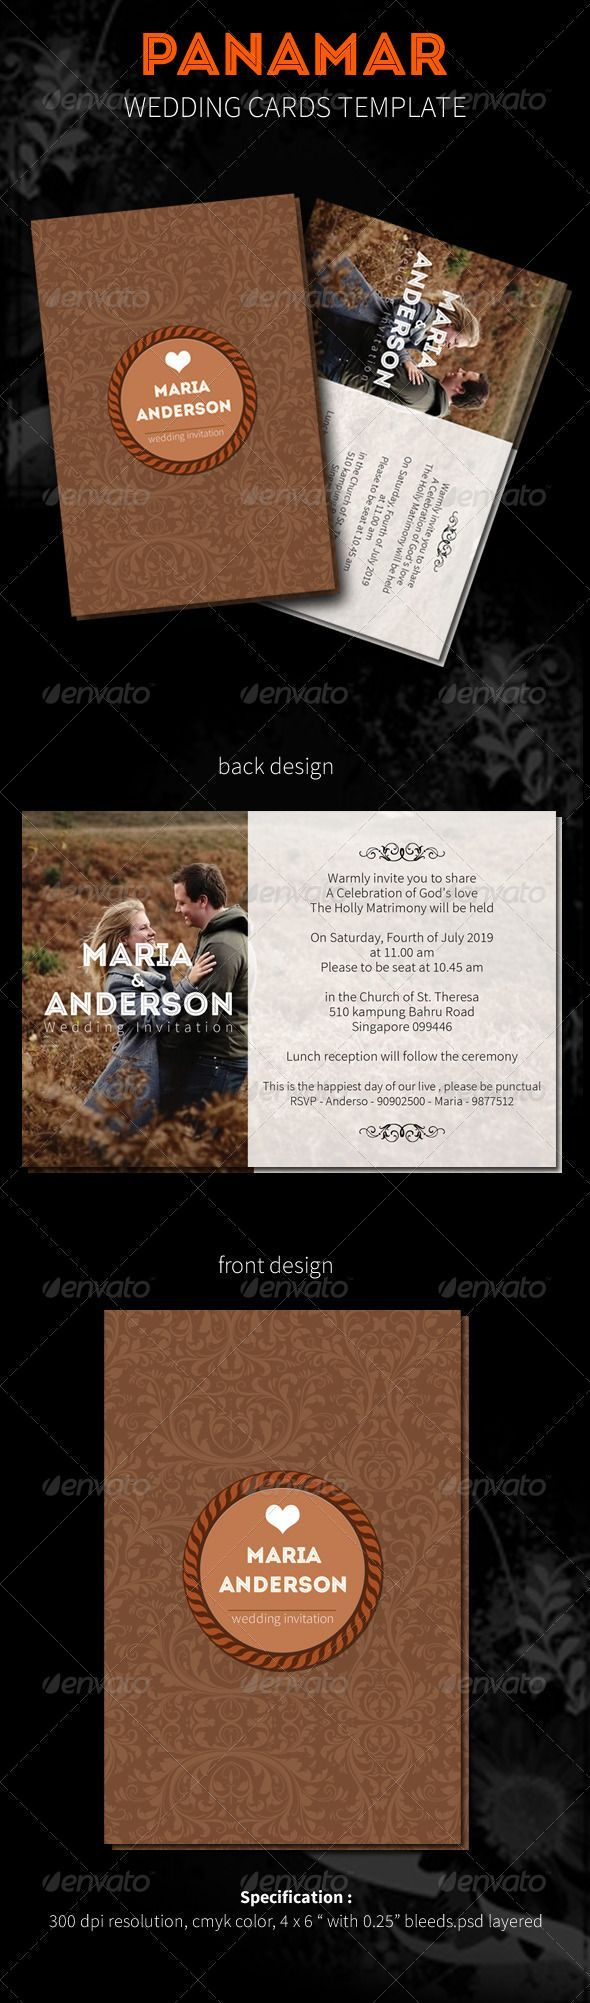 Panamar wedding cards wedding card invitation template psd downlo